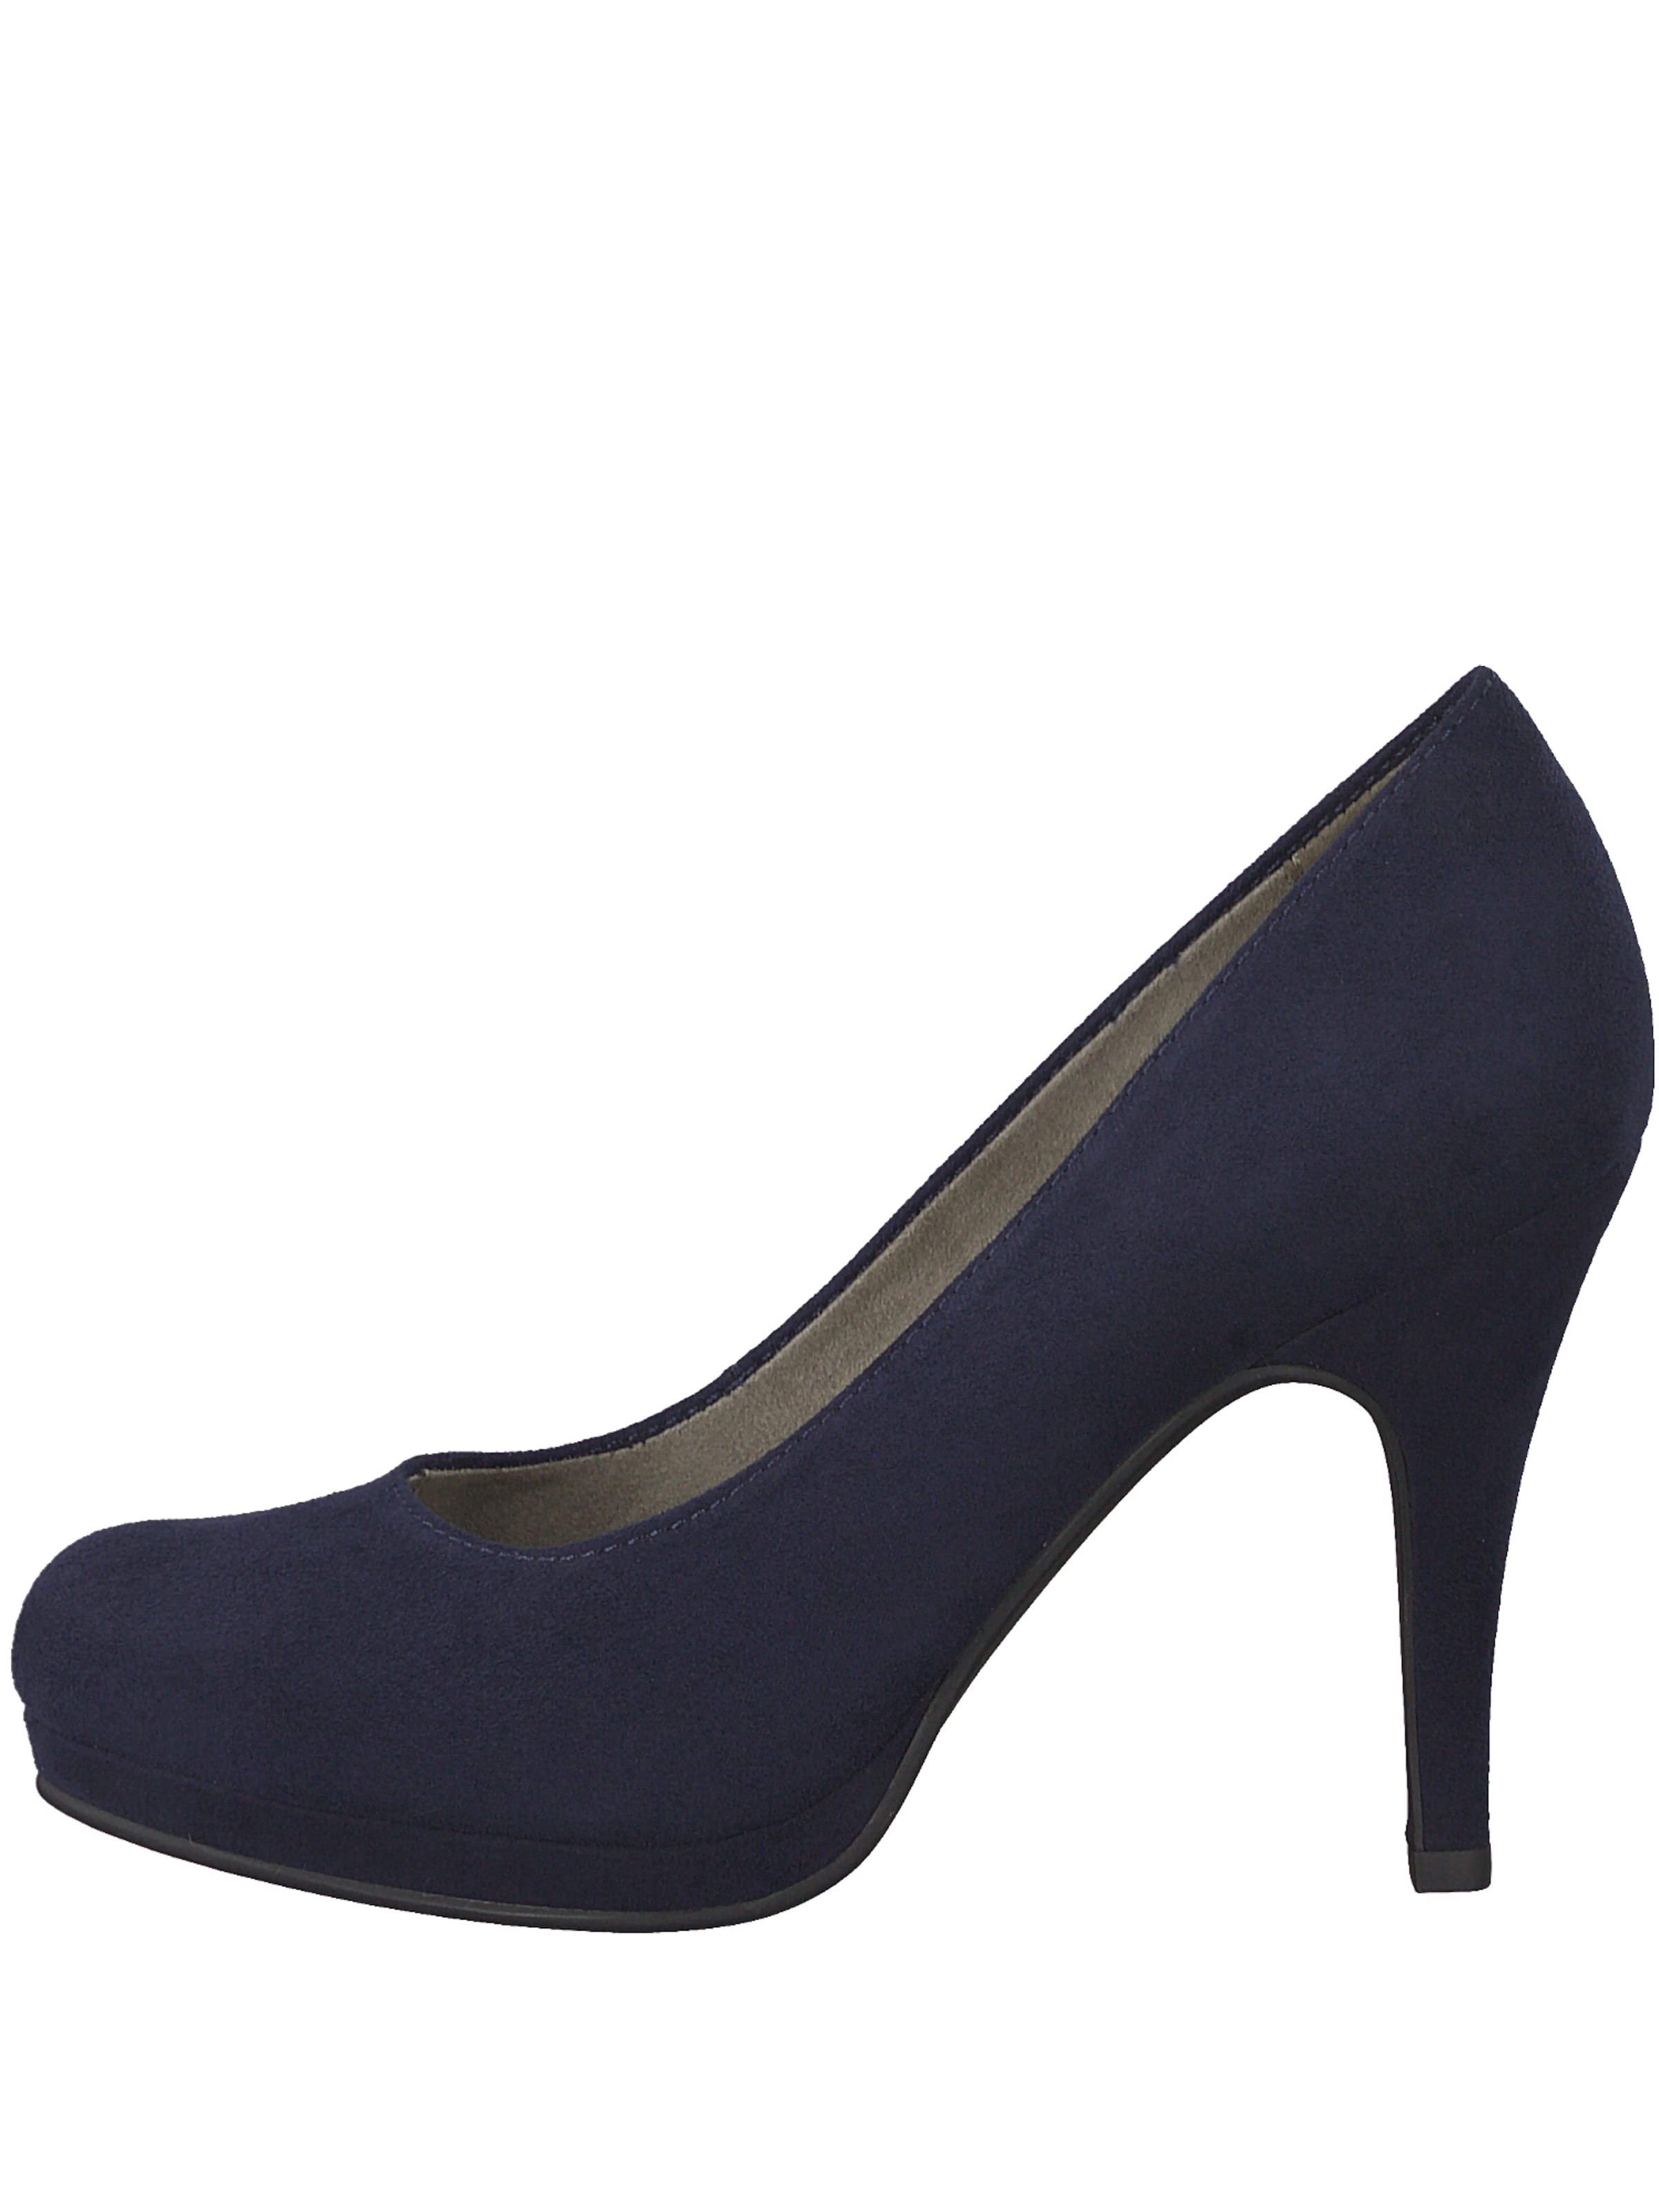 Pumps In Tamaris In Navy Pumps Tamaris dCBeWrxo